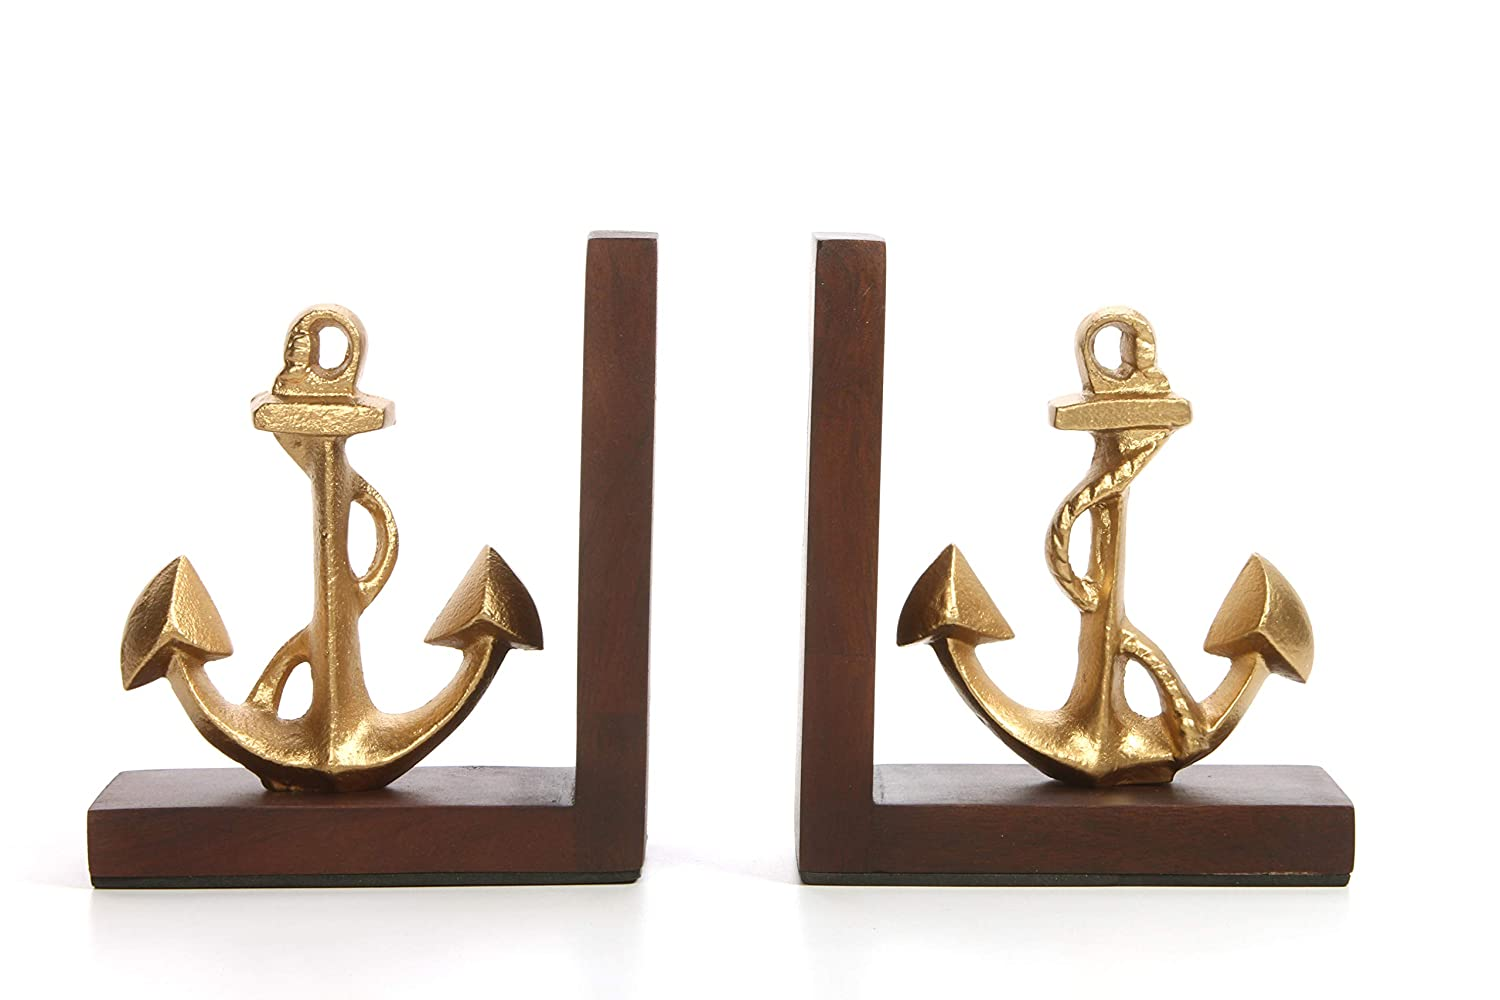 Hosley Decorative Tabletop Anchor Bookends- 6.50 High. Ideal Gift for Wedding, Home, Party Favor, Spa, Reiki, Meditation, Bathroom Settings P1 HG Global